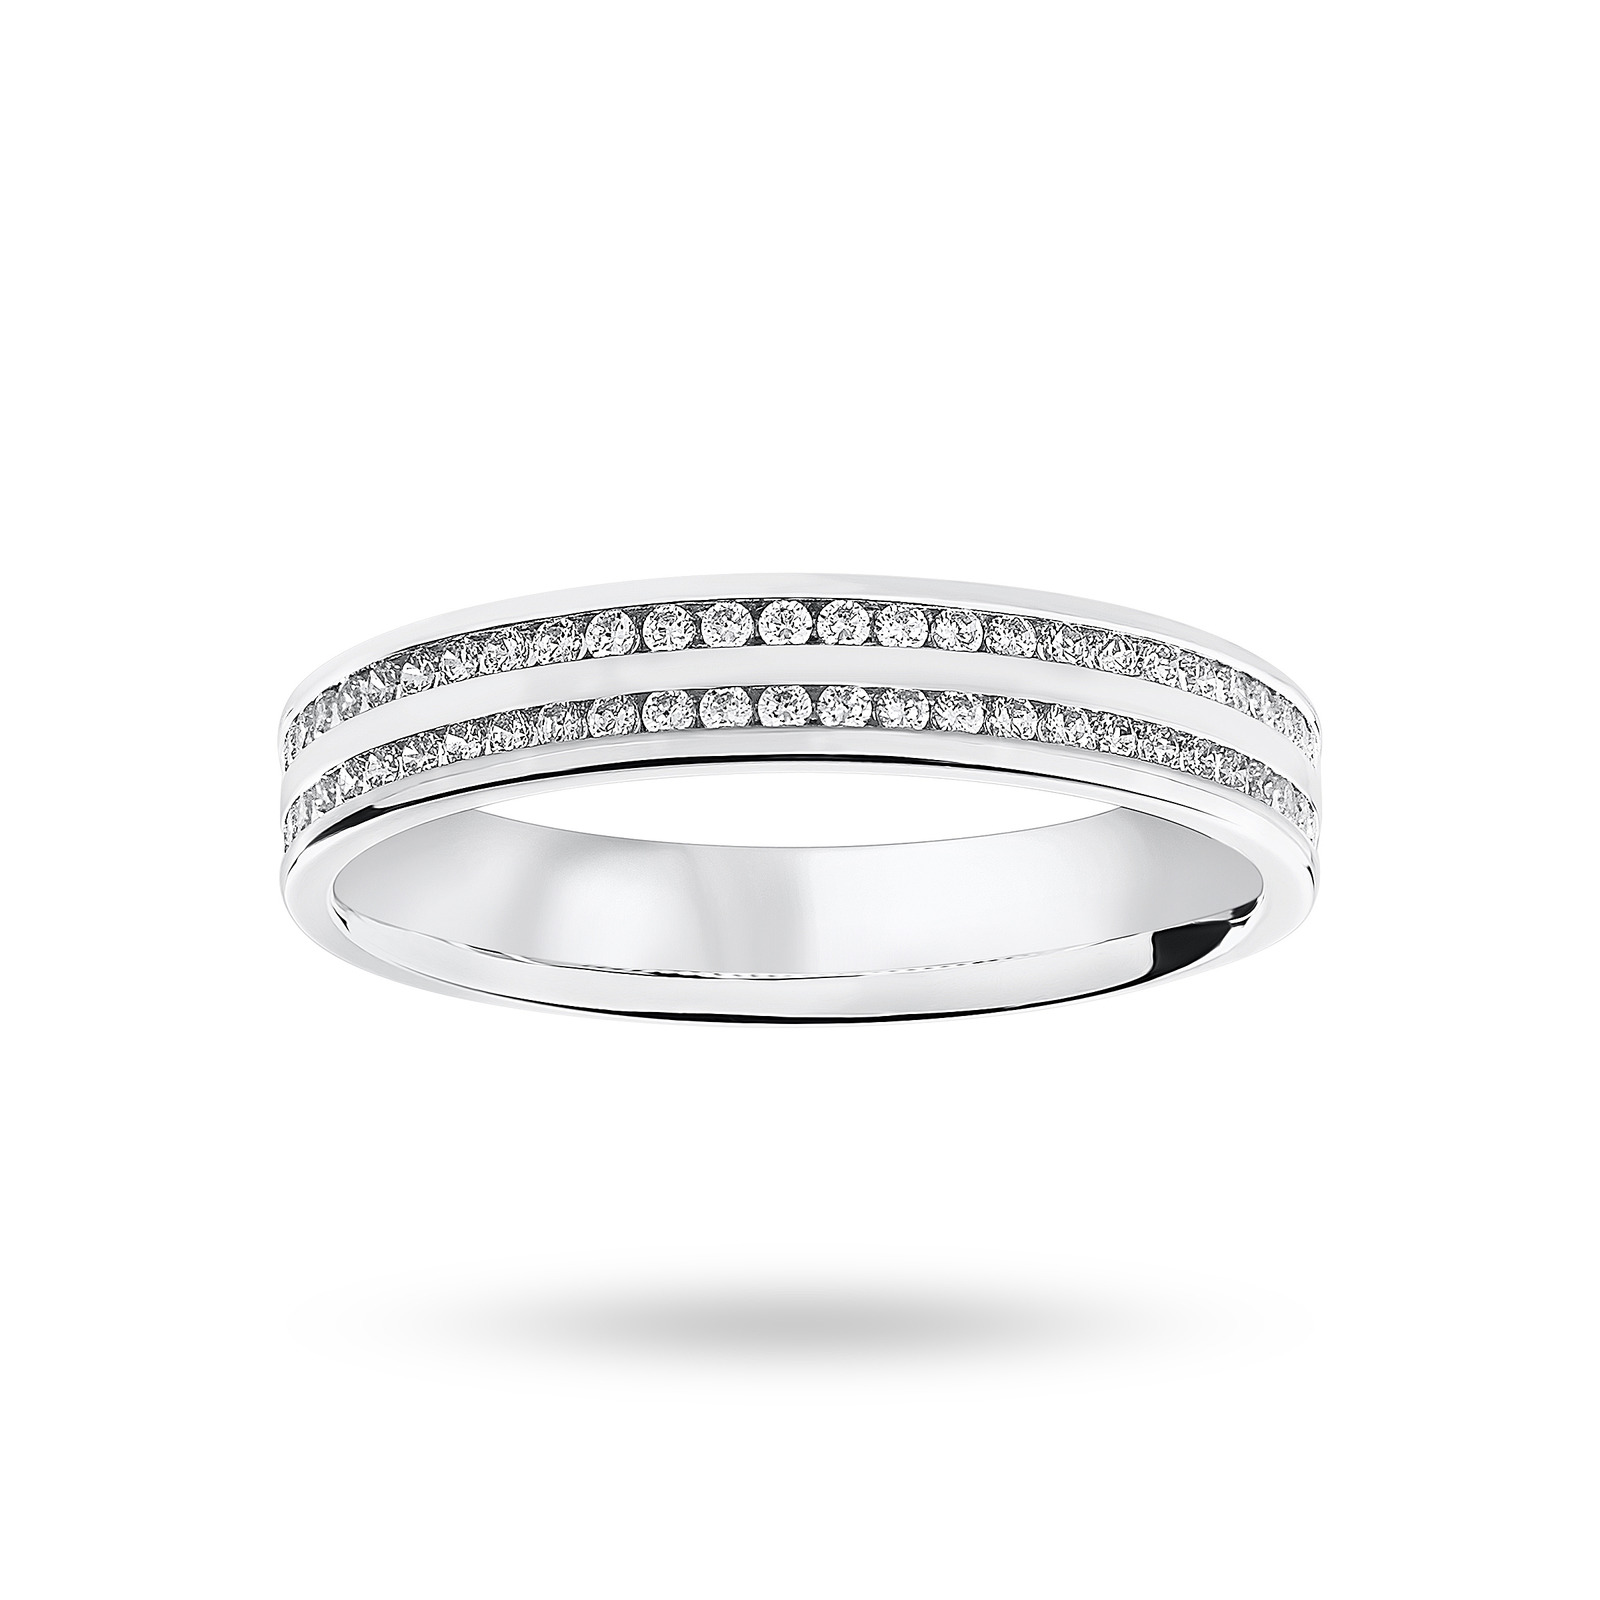 9 ct White Gold 0.28 cttw Round Brilliant Cut 2 Row Channel Set Half Eternity Ring